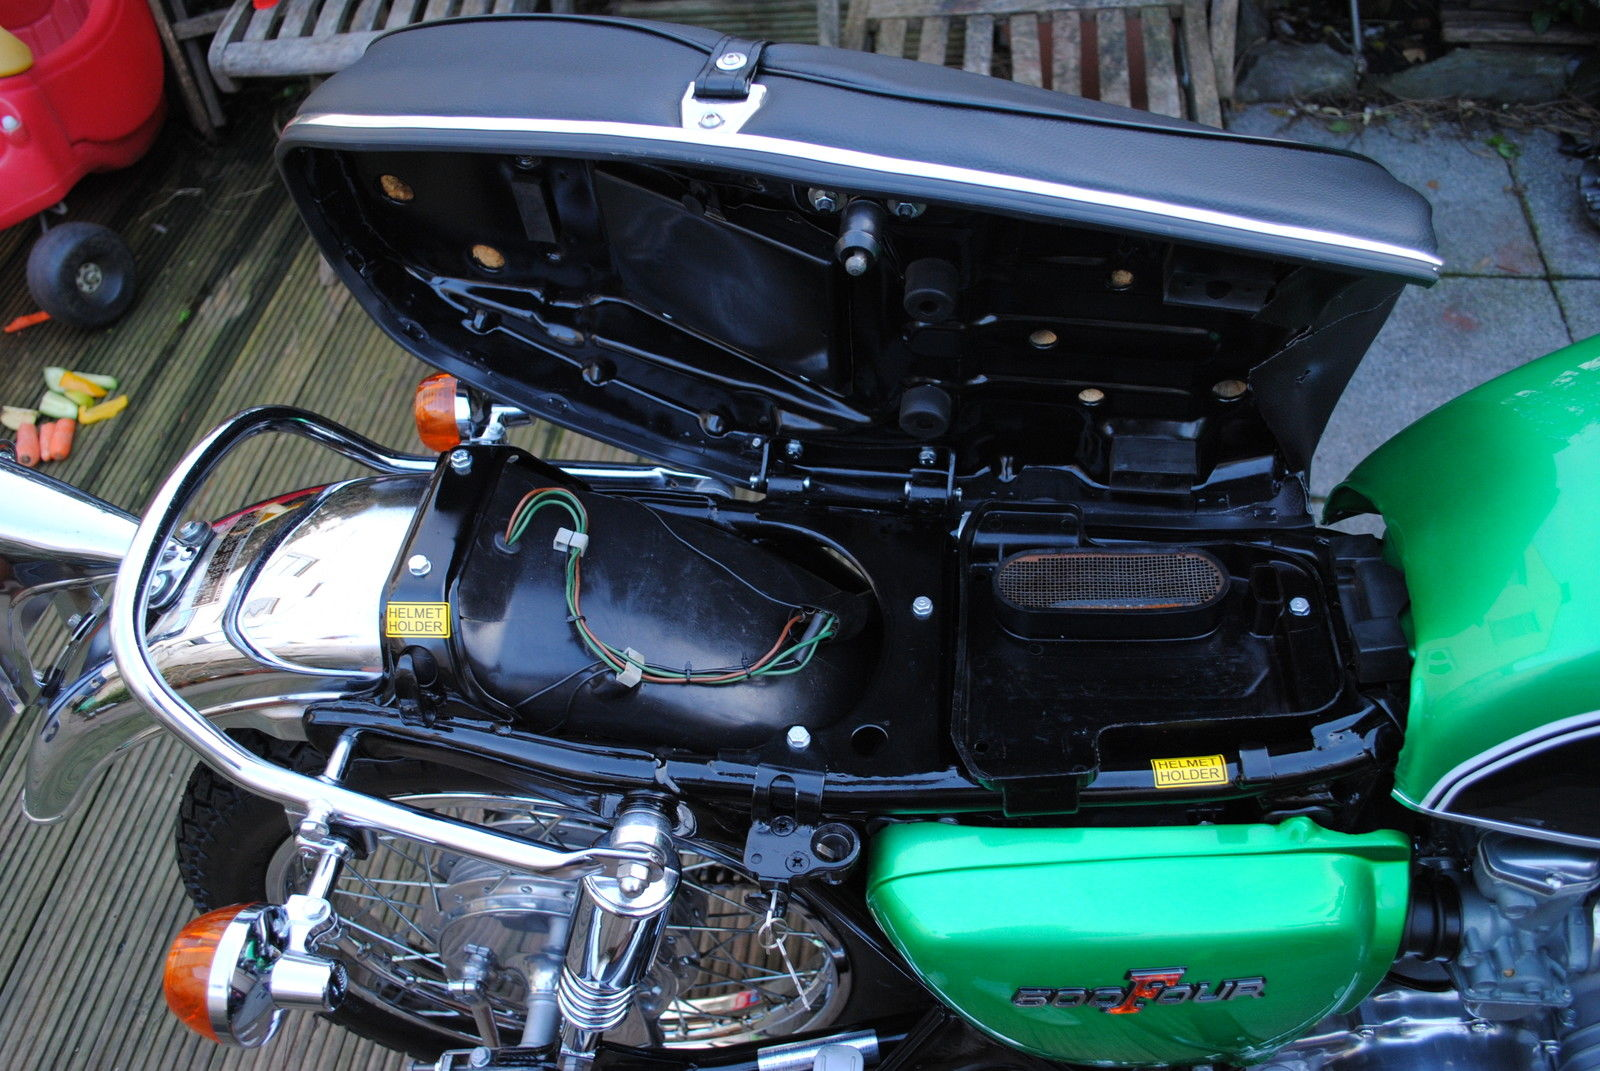 Honda CB500 Four - 1972 - Under Seat, Inner Mudguard, Frame, Side Panel and Battery.